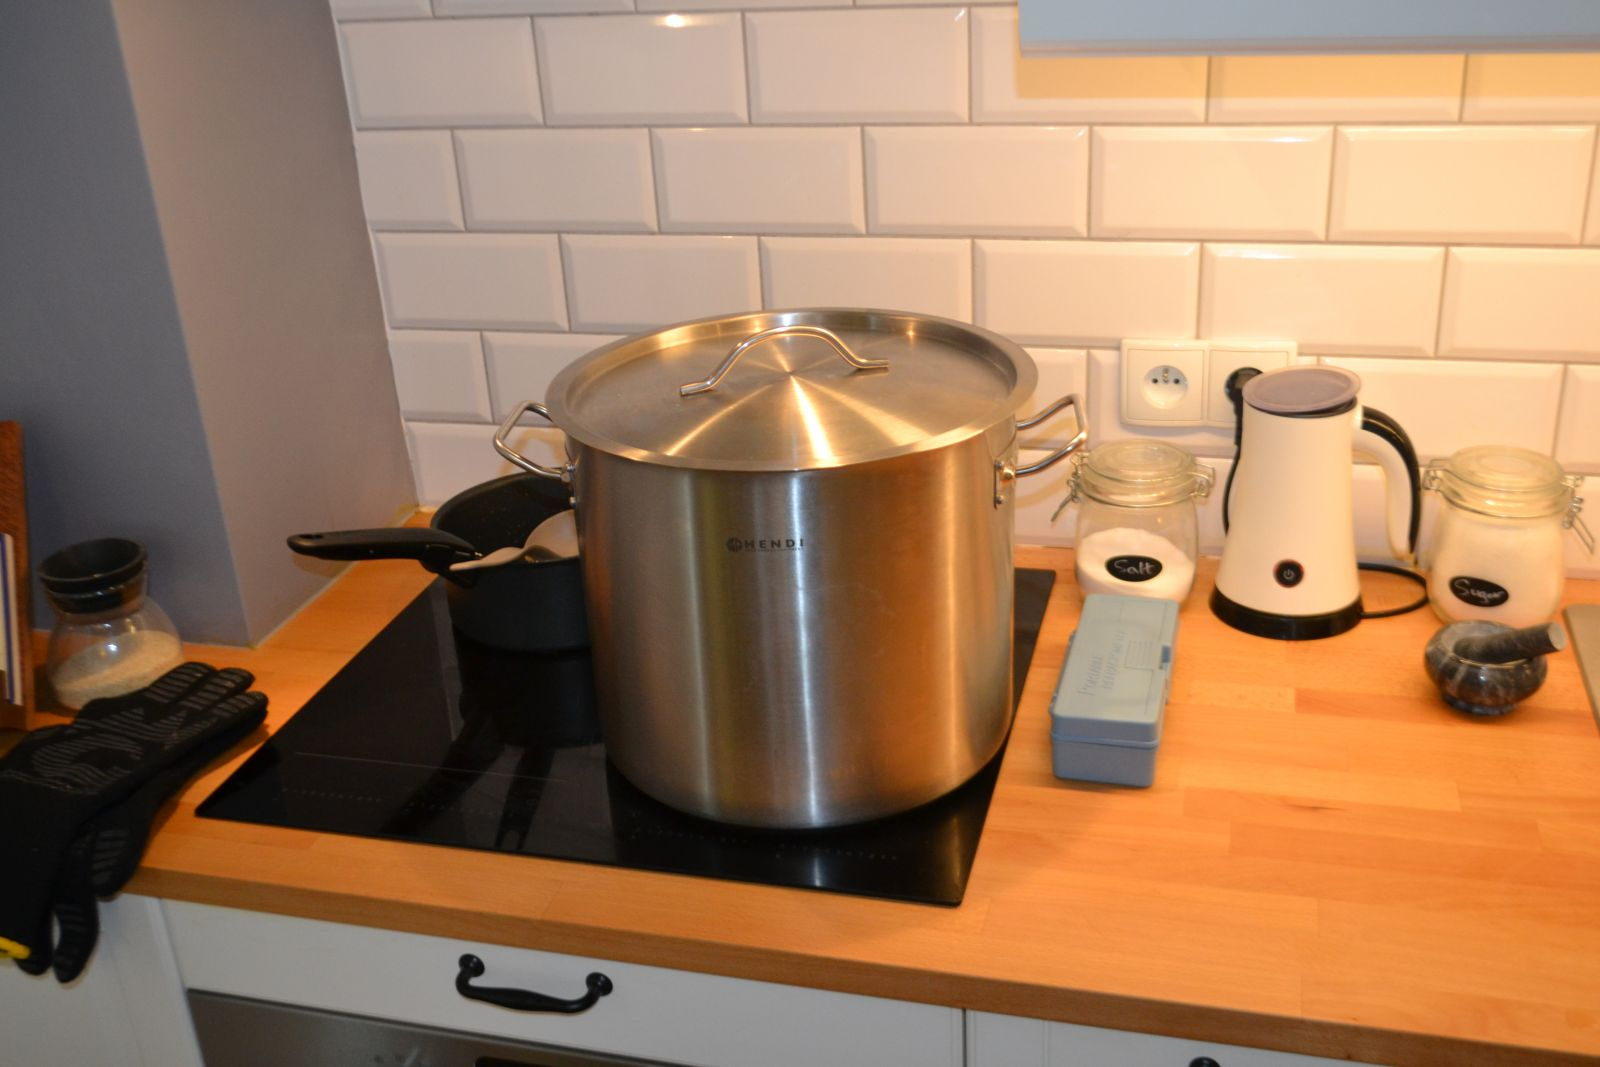 Boil Setup with 21 L Pot on Stove